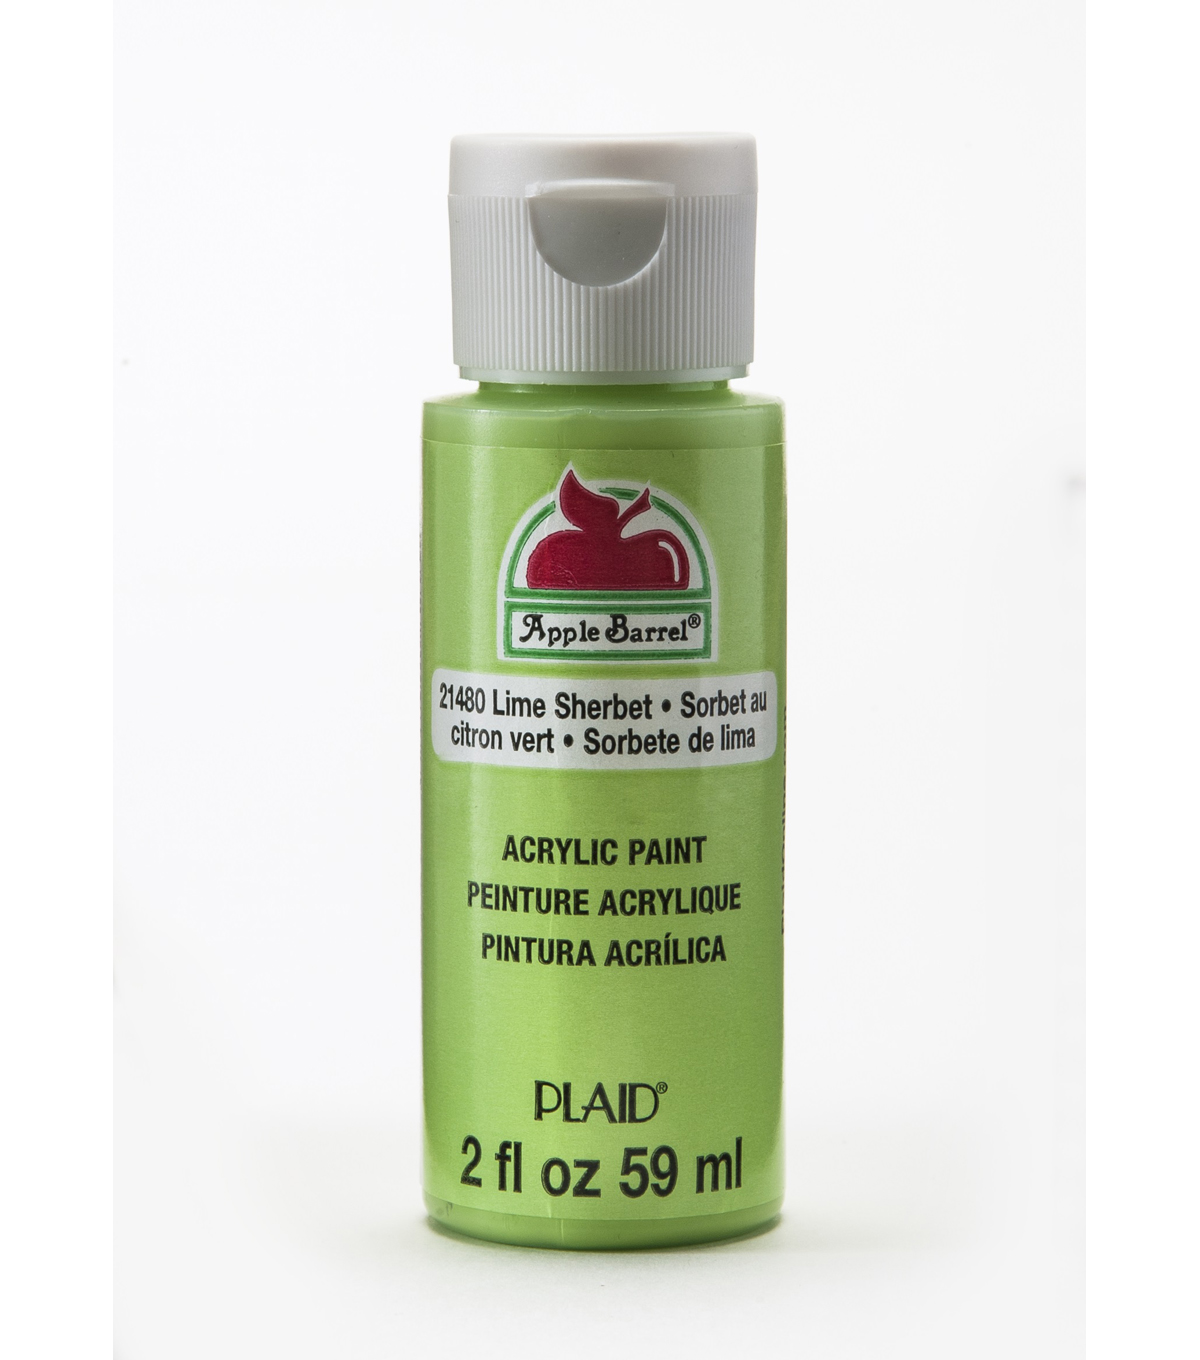 Apple Barrel 2 fl. oz. Acrylic Paint, Lime Sherbert